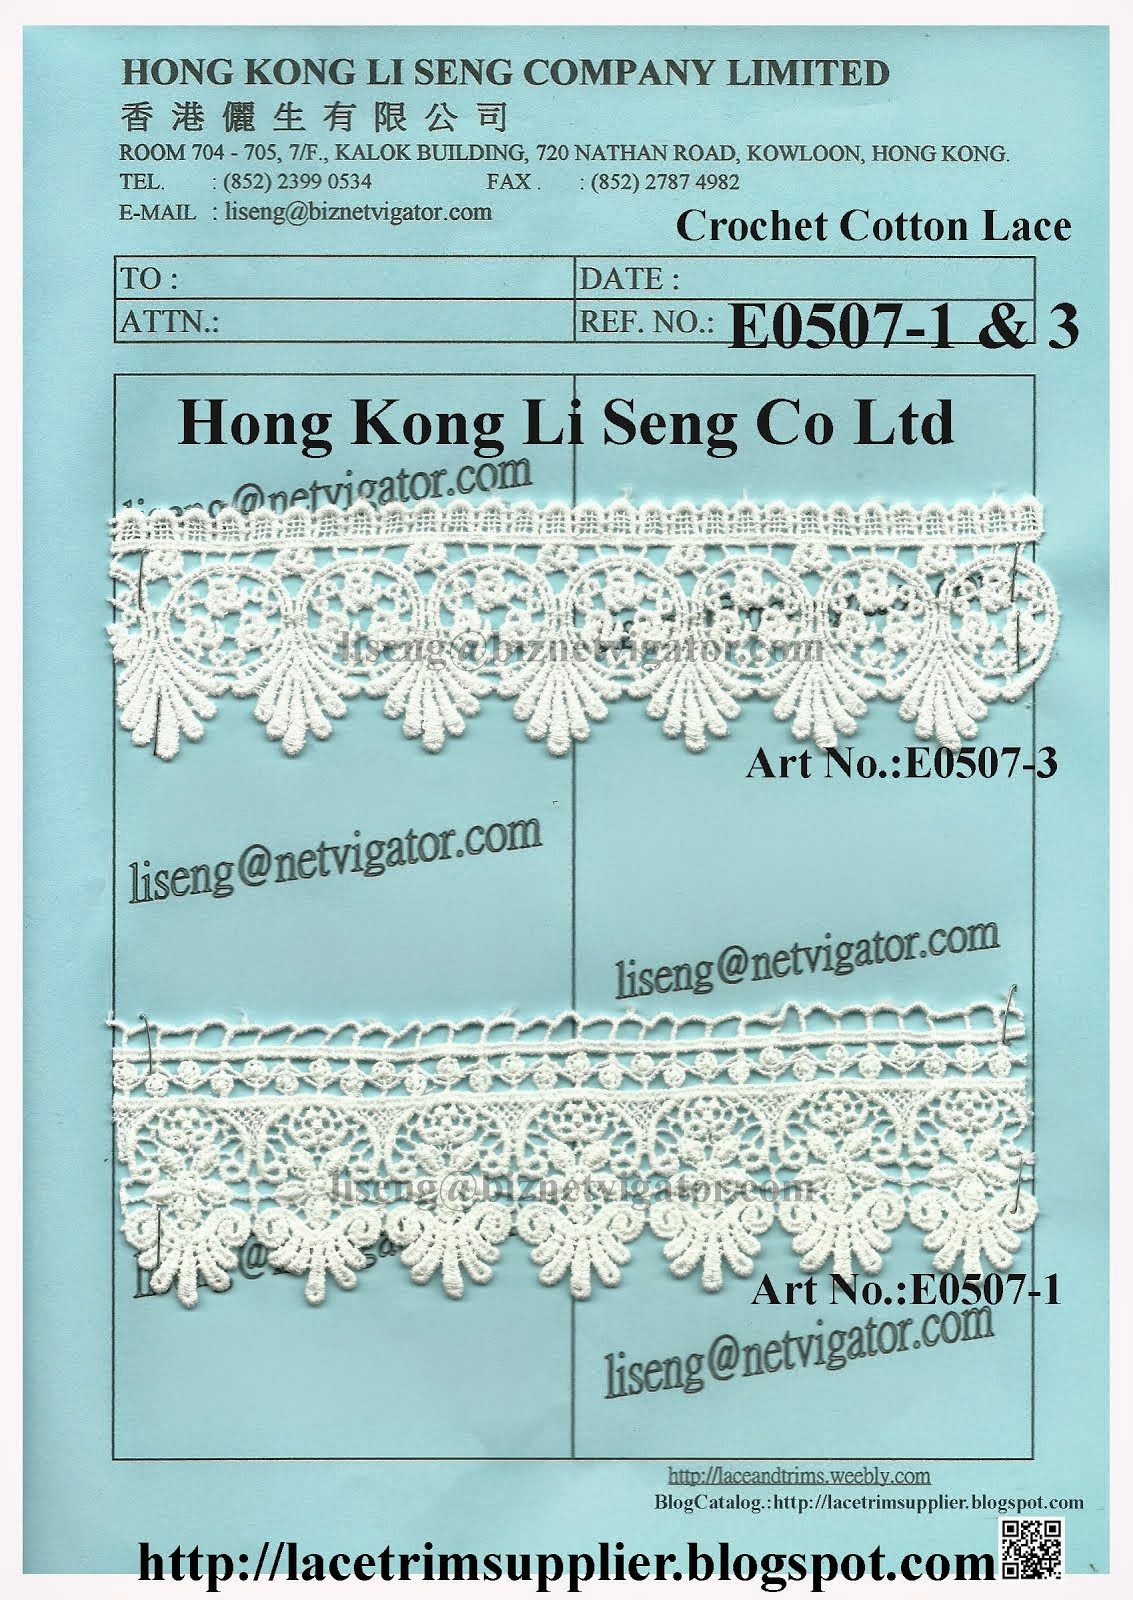 Crochet Cotton Lace Trims Manufacturer and Supplier - Hong Kong Li Seng Co Ltd